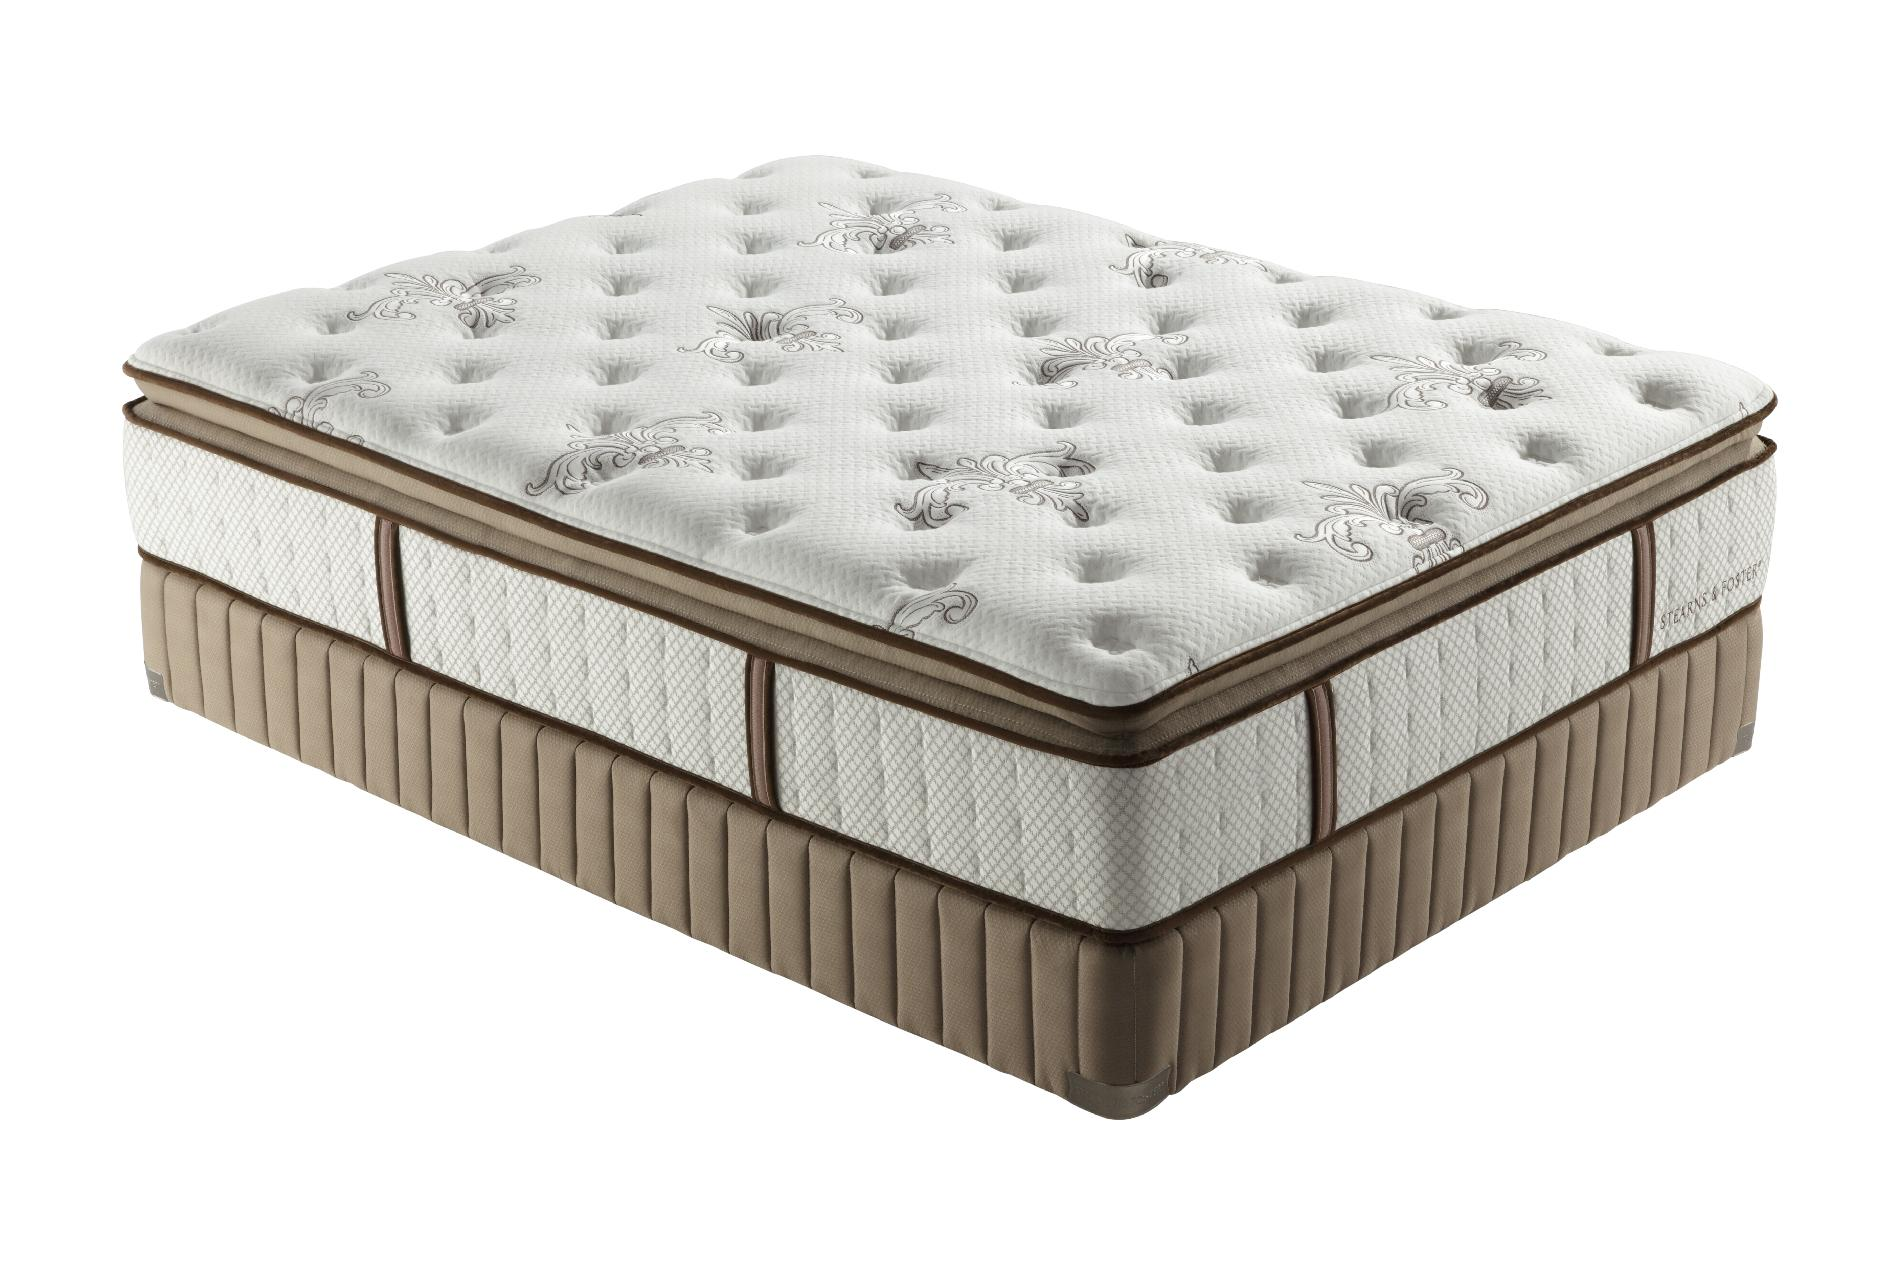 Stearns & Foster Estate Chasity II Plush Euro Pillowtop King Mattress Only